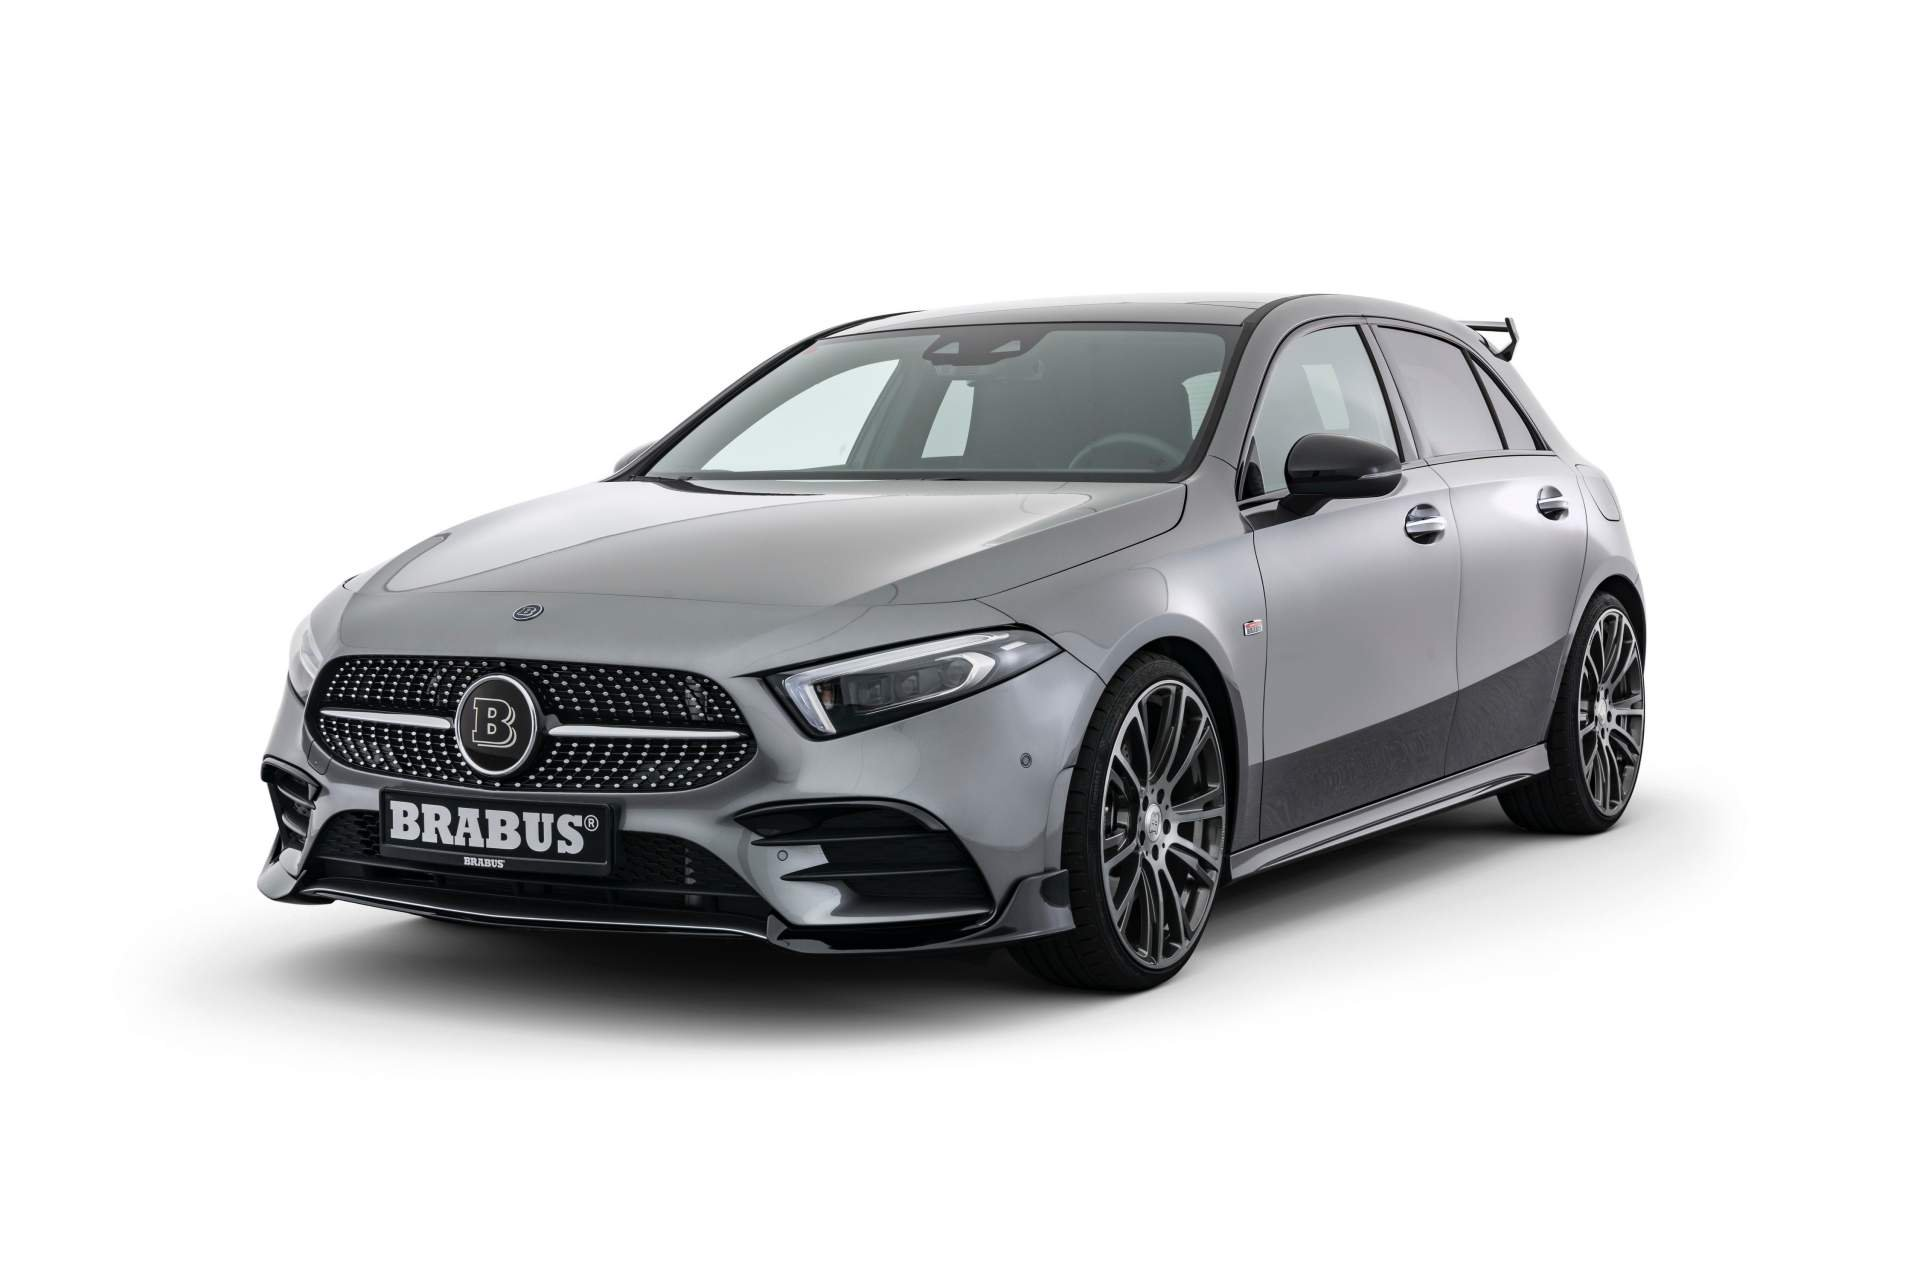 brabus reveals hot 2019 mercedes a class body kit and 270 hp power pack autoevolution. Black Bedroom Furniture Sets. Home Design Ideas